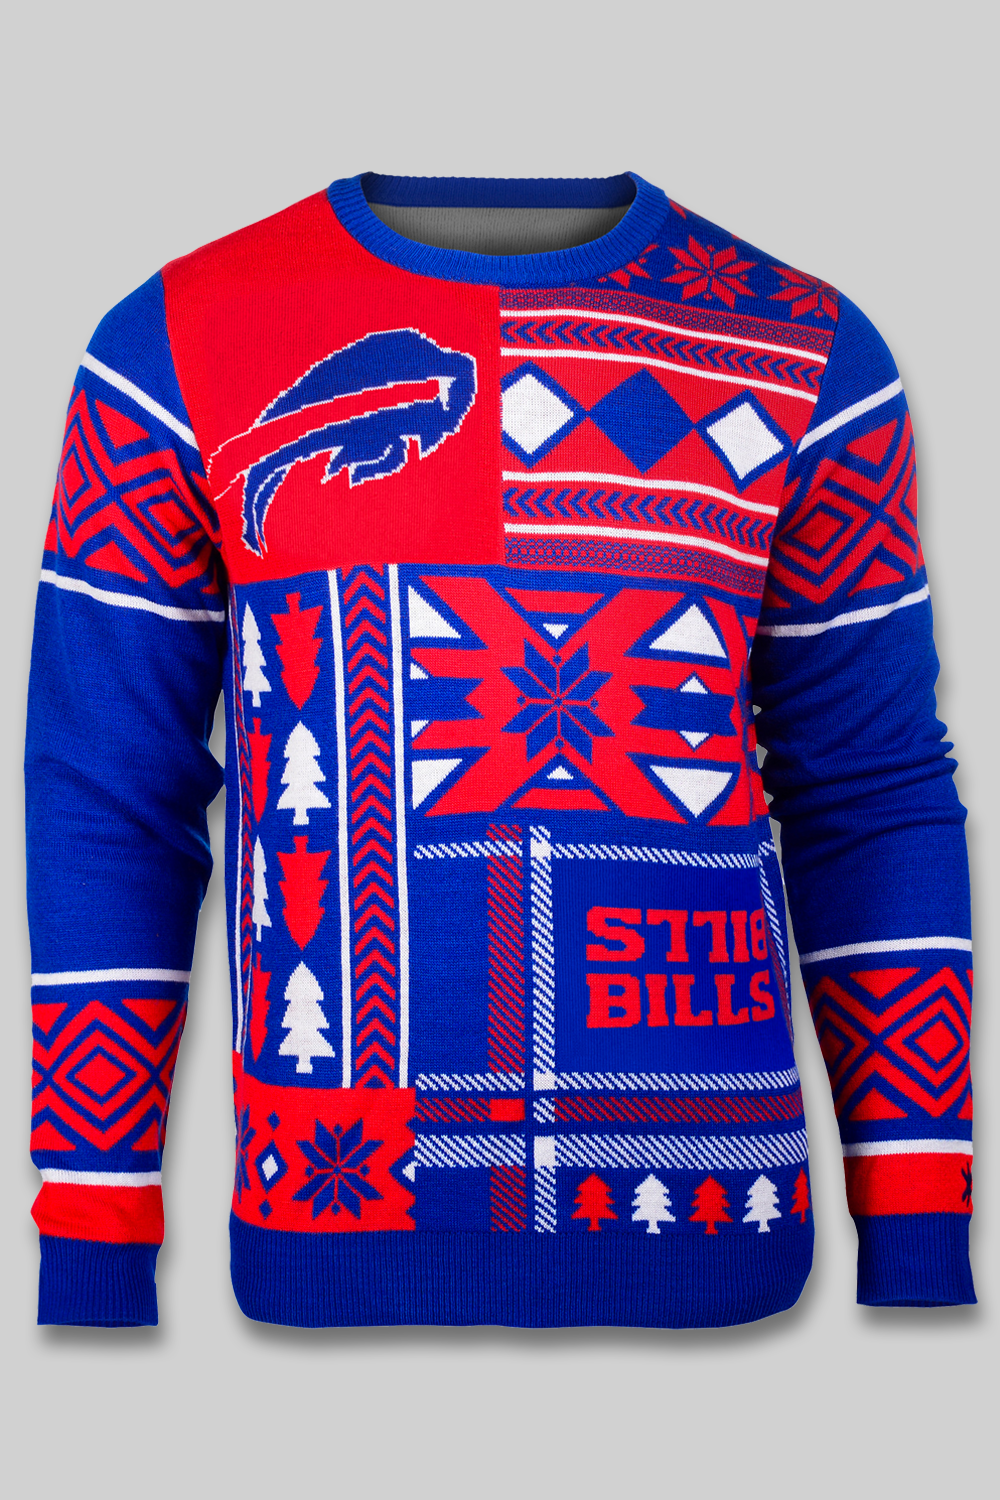 The Best Gift For Buffalo Bills Fans I Need This Ugly Christmas